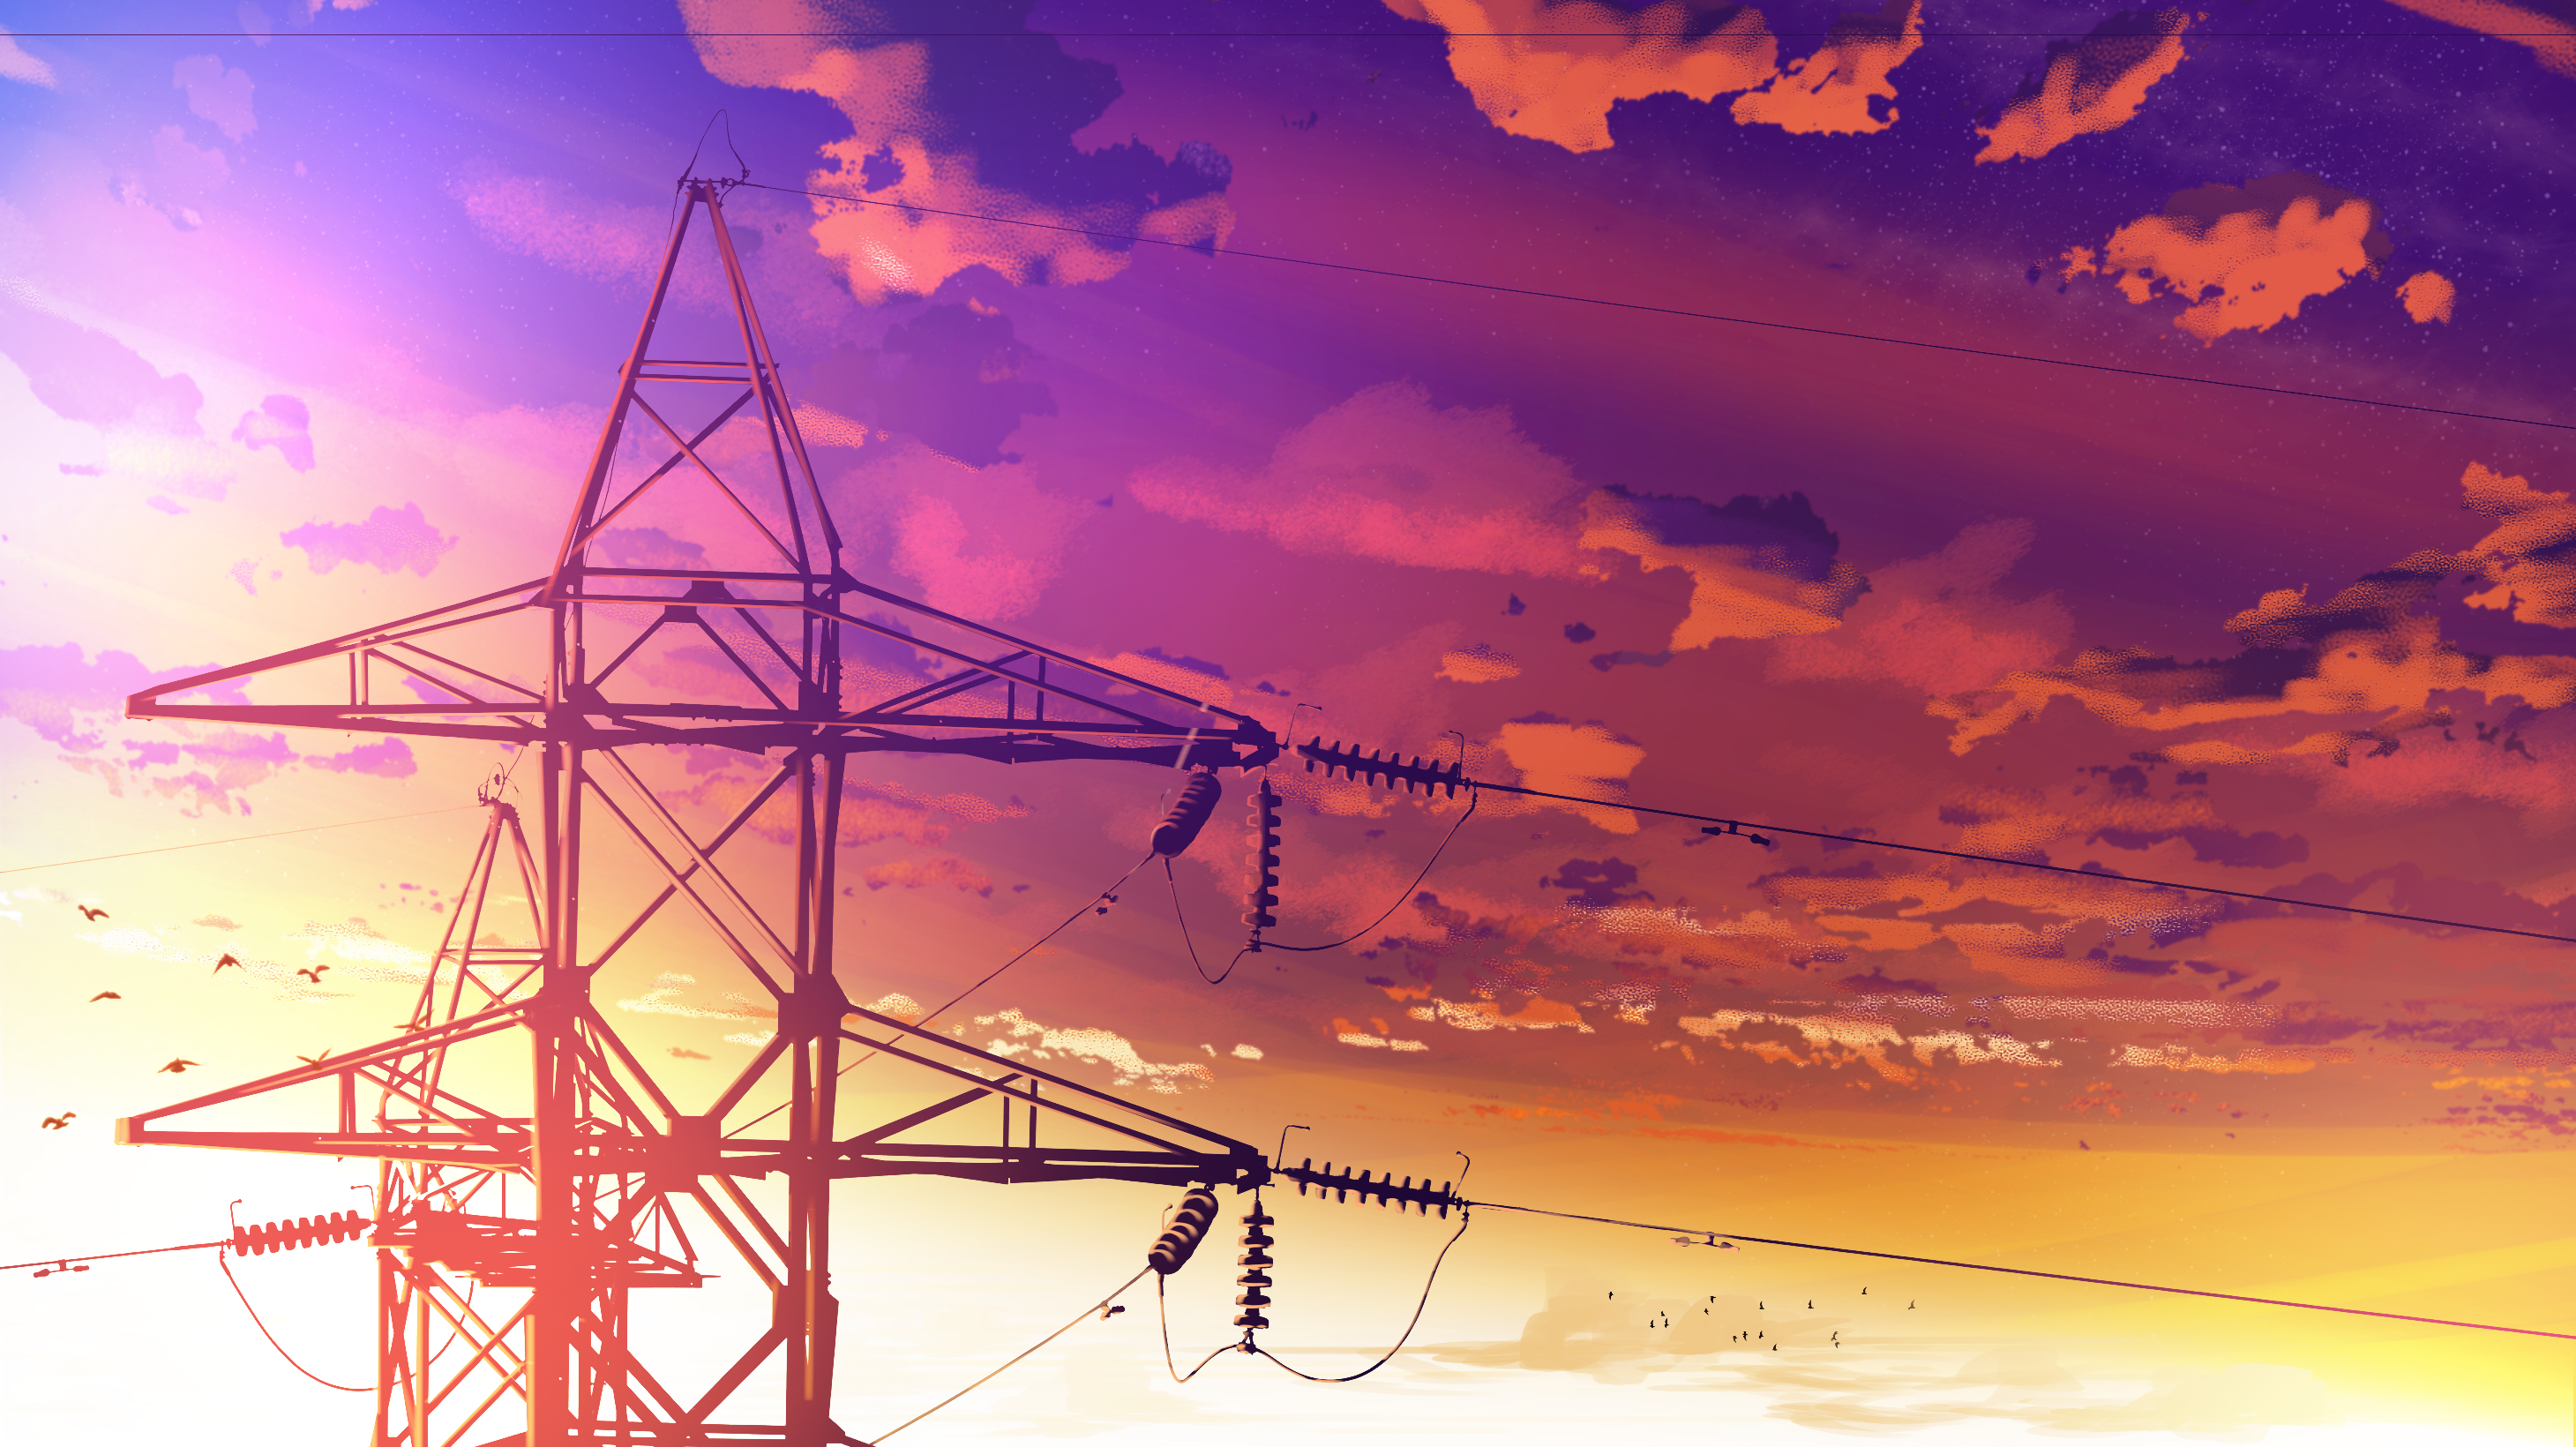 Cable Power Lines Electric Transmission Tower Utility Pole Resized By Ze Robot